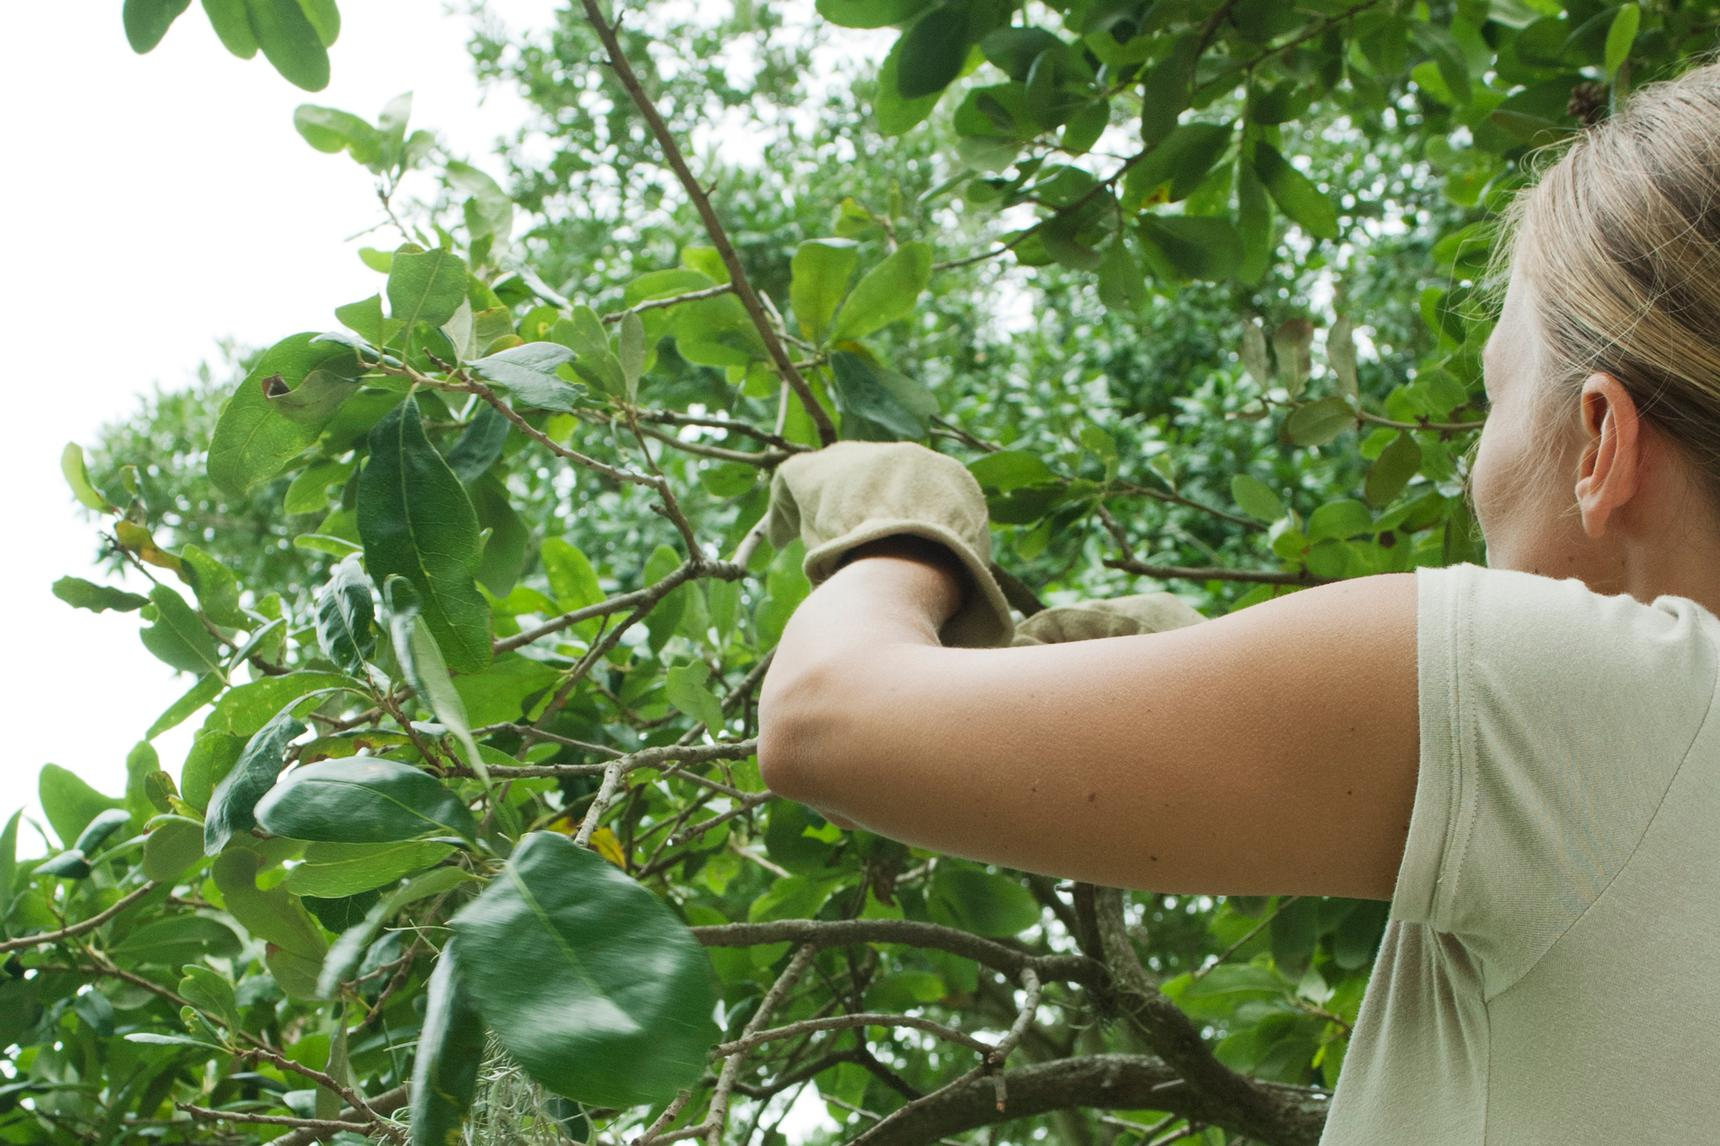 A woman with a green short-sleeved T-shirt trimming branches